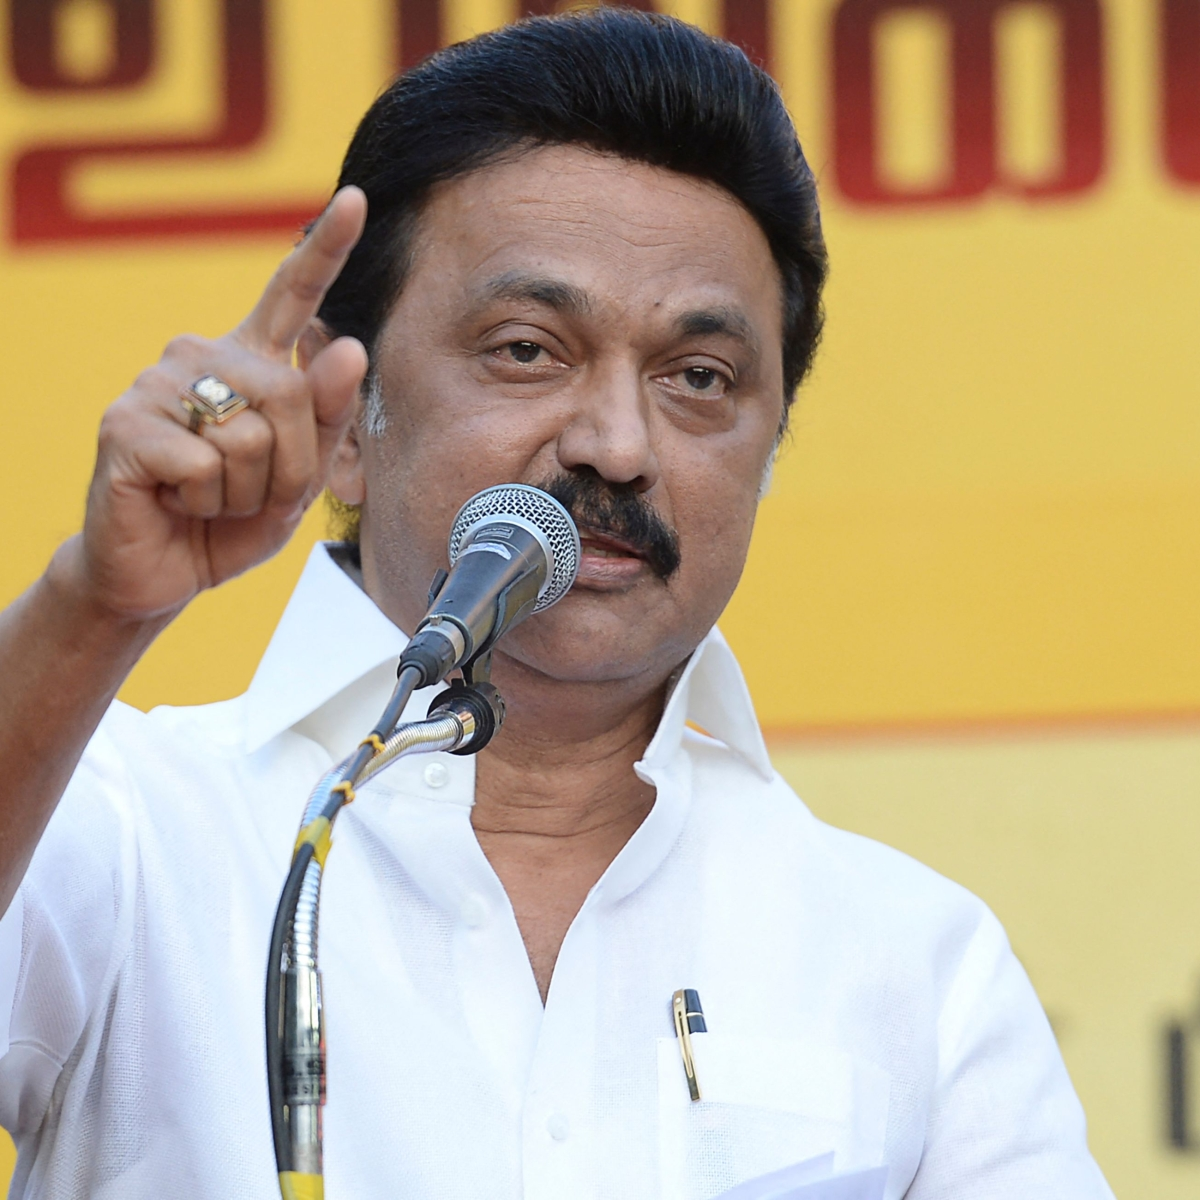 Tamil Nadu CM MK Stalin announces Rs 2,000 COVID-19 relief, cuts Aavin milk prices